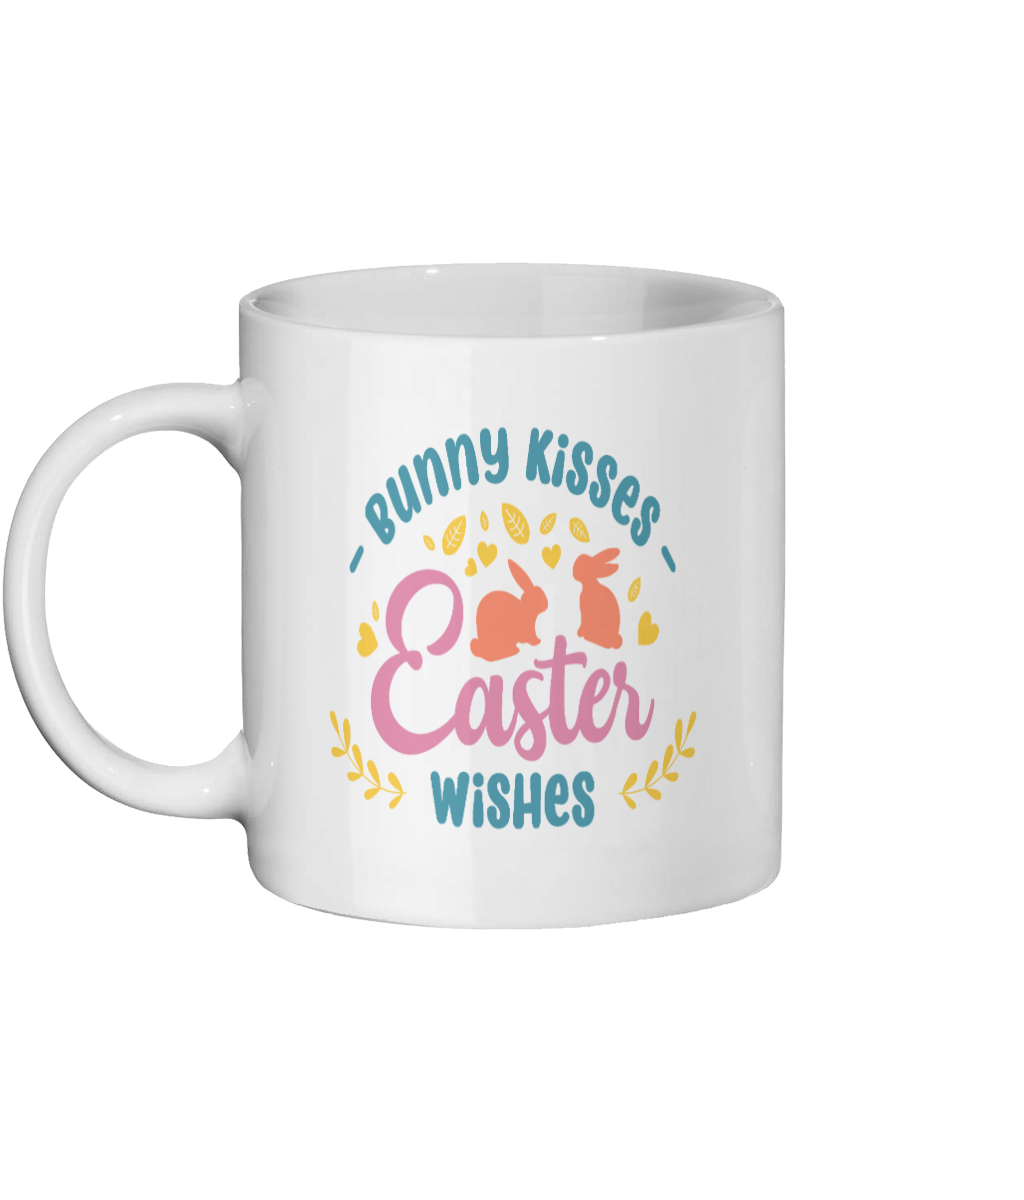 [personalised_mug]Easter wishes ceramic custom Easter mug - status mugs